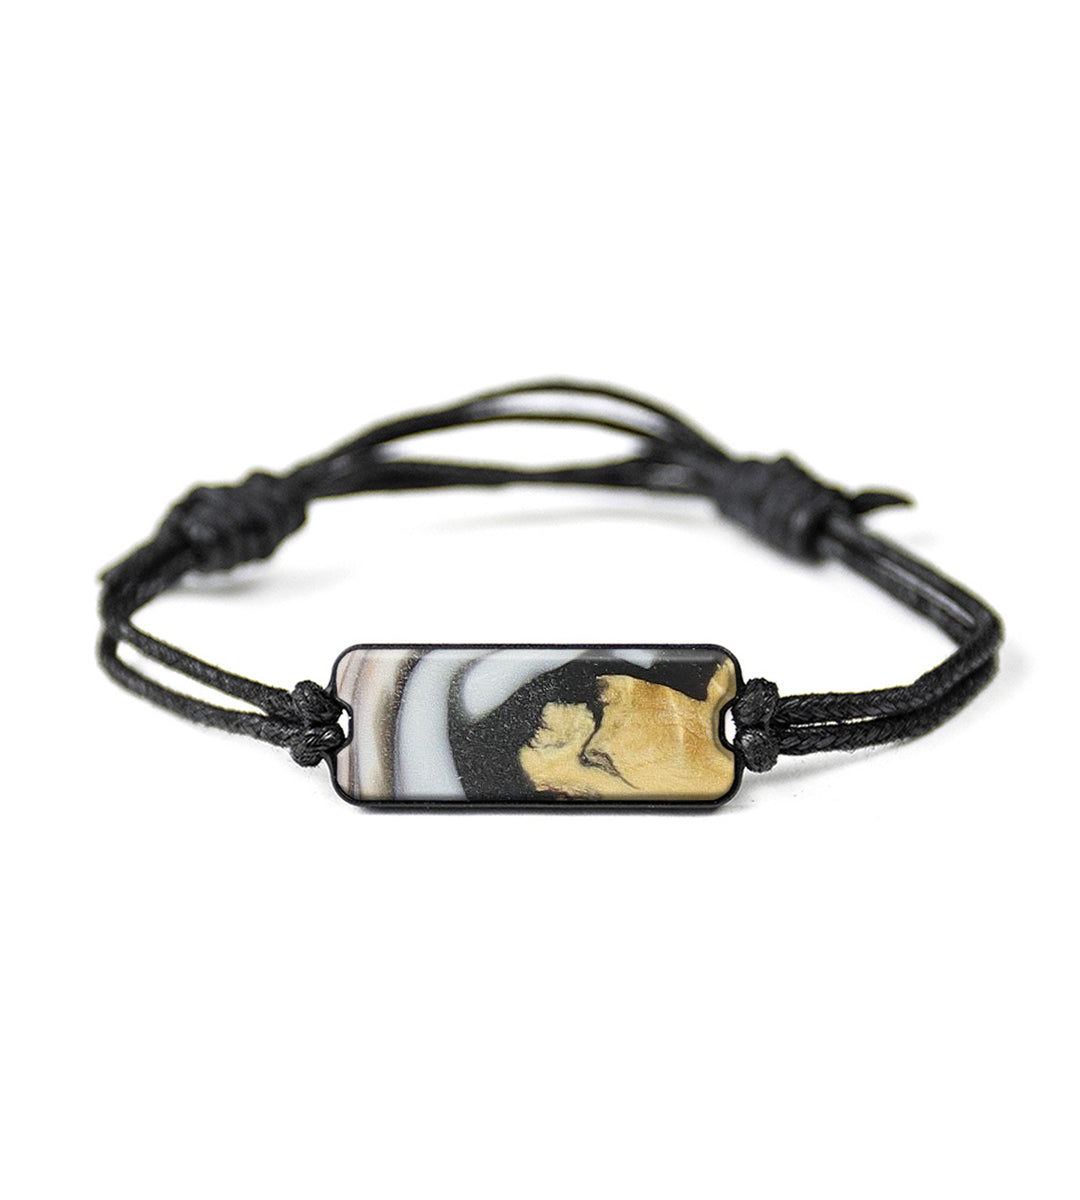 Classic Wood+Resin Bracelet - Raphaela (Black & White, 368573)